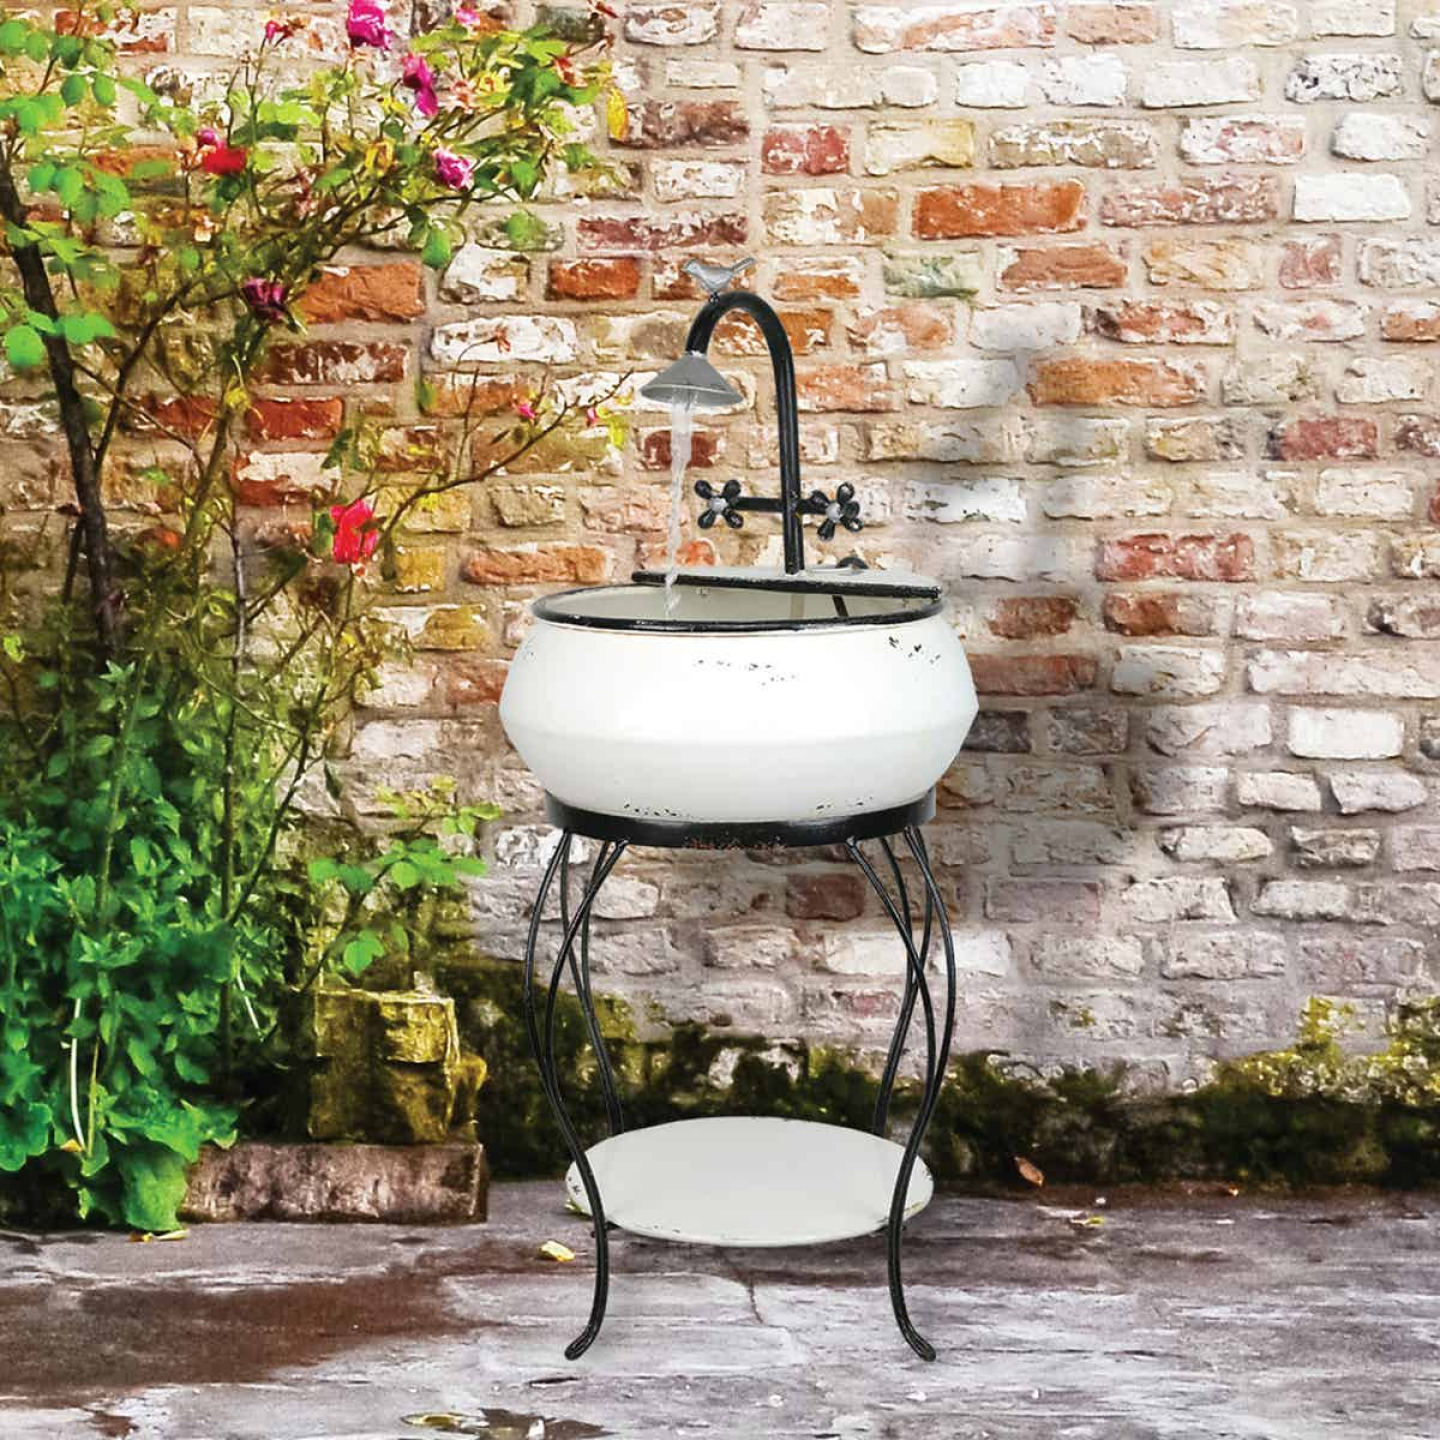 Alpine 16 In. W. x 32 In. H. x 16 In. L. Iron Vintage Sink Fountain Image 2